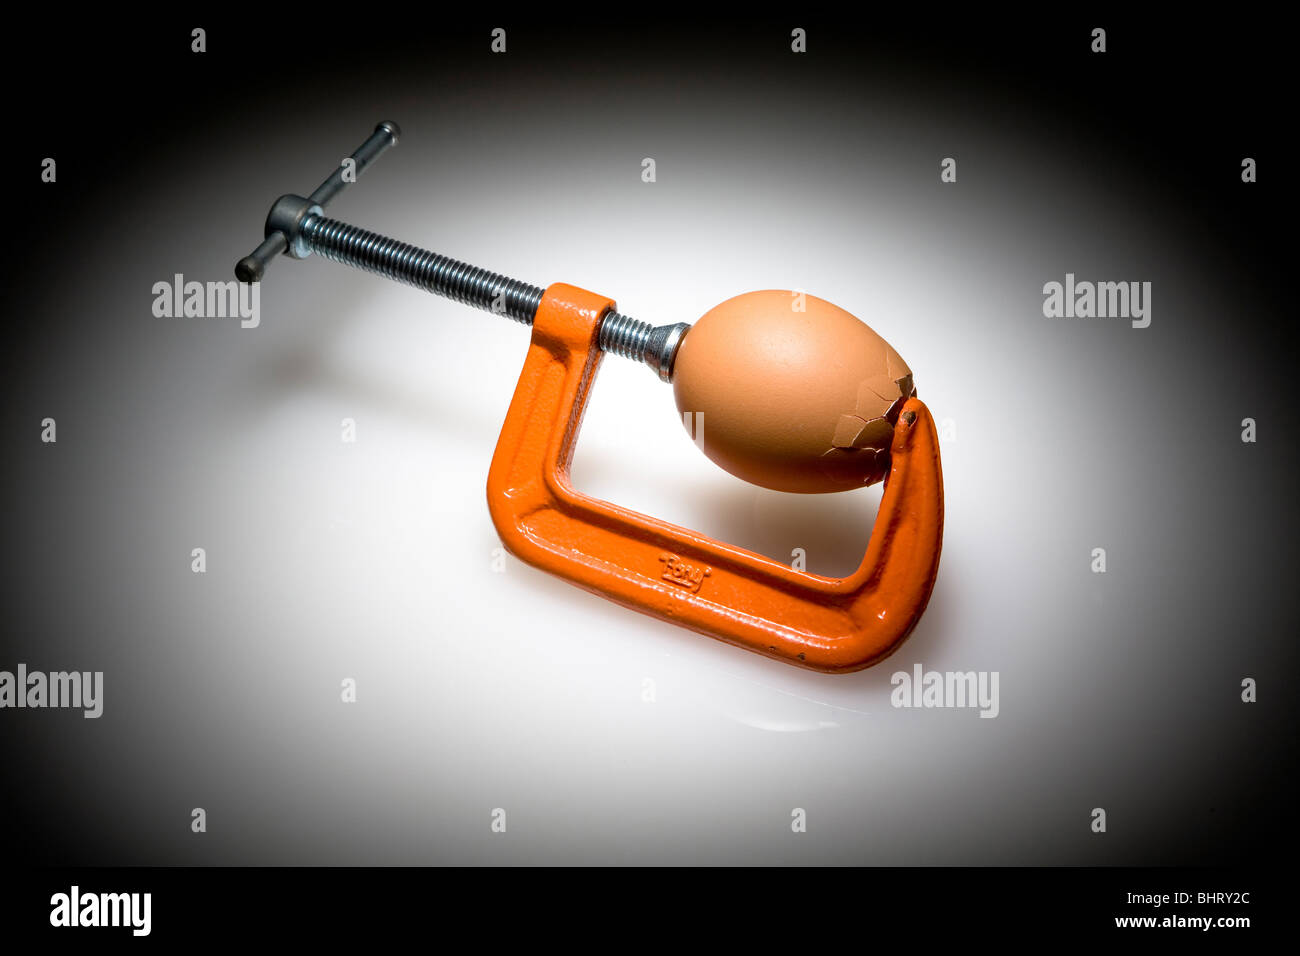 C-Clamp and Egg - Stock Image